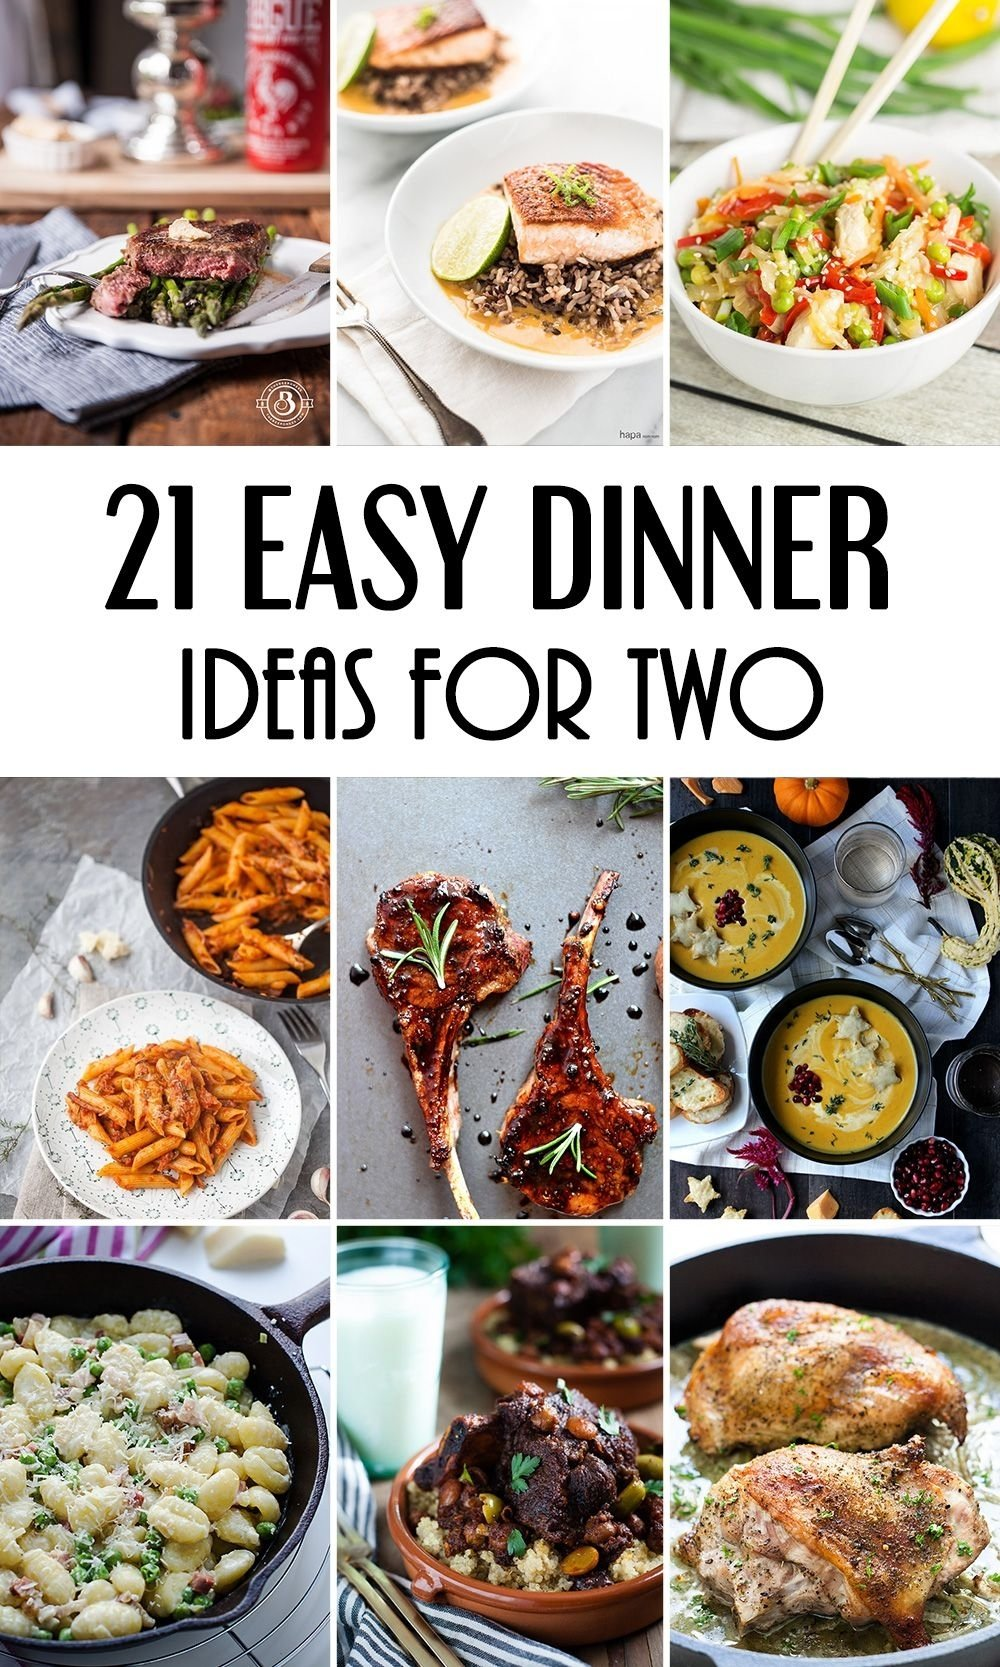 10 Famous Weeknight Dinner Ideas For Two 21 easy dinner ideas for two that will impress your loved one 4 2020